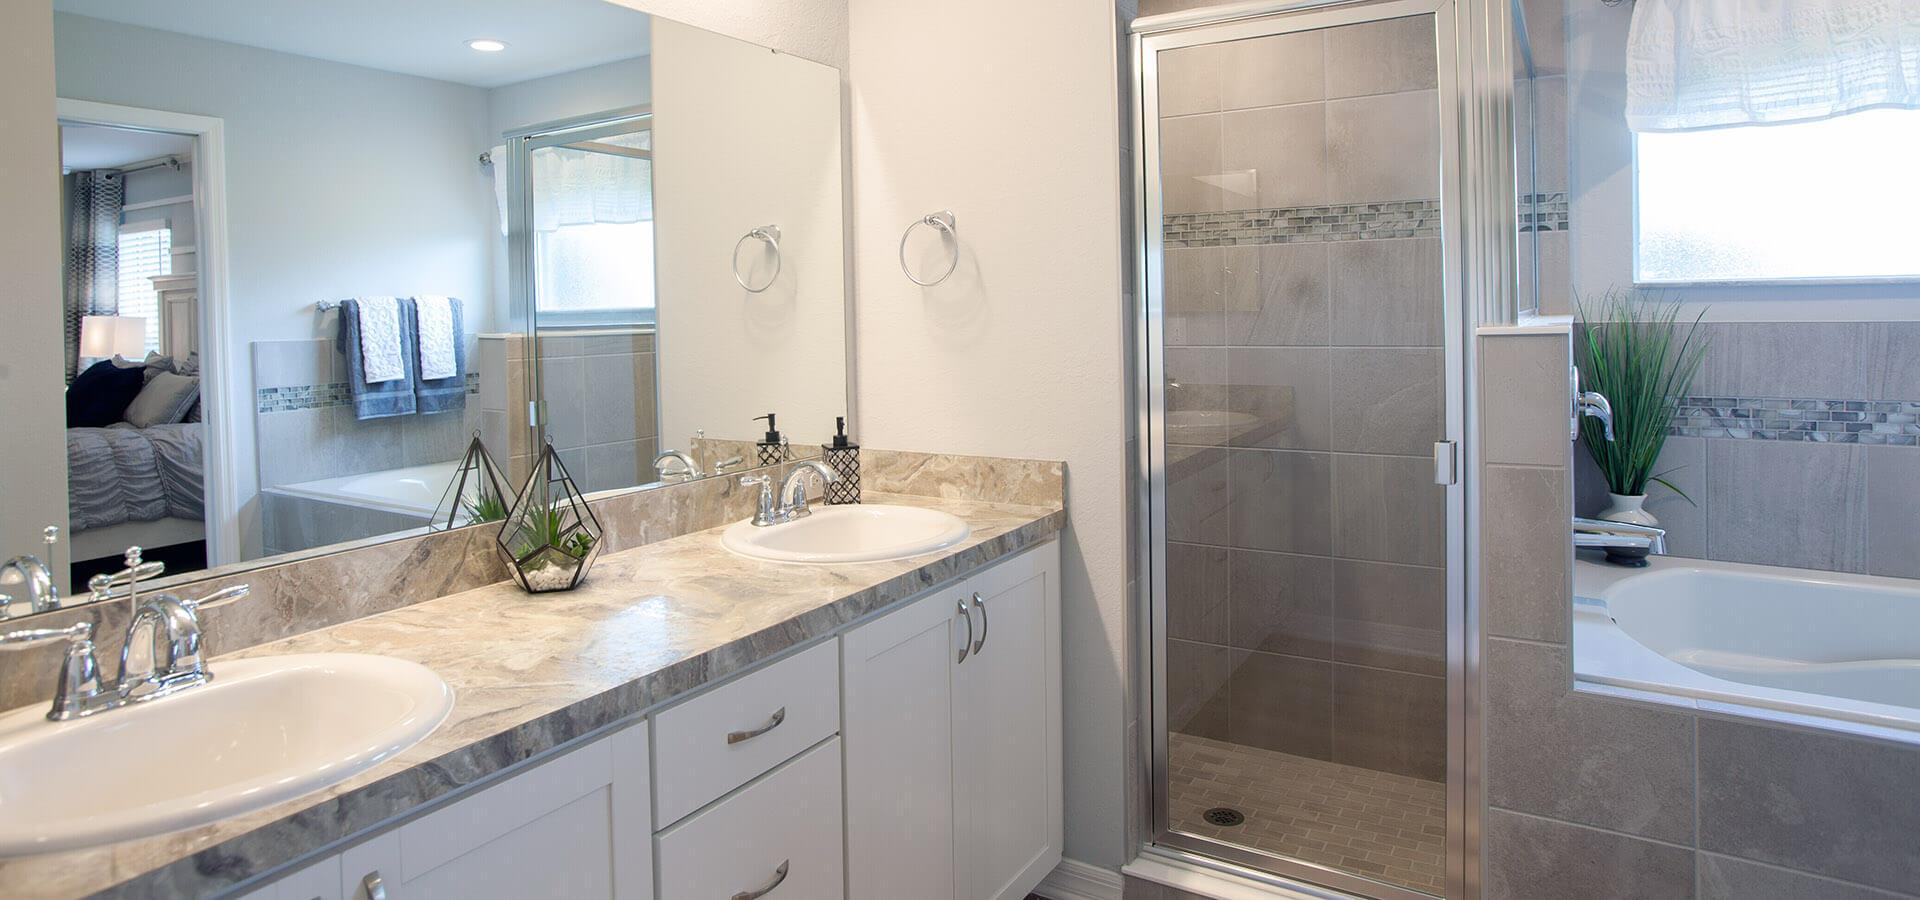 En-suite owner's bath with dual vanities, tub, and shower